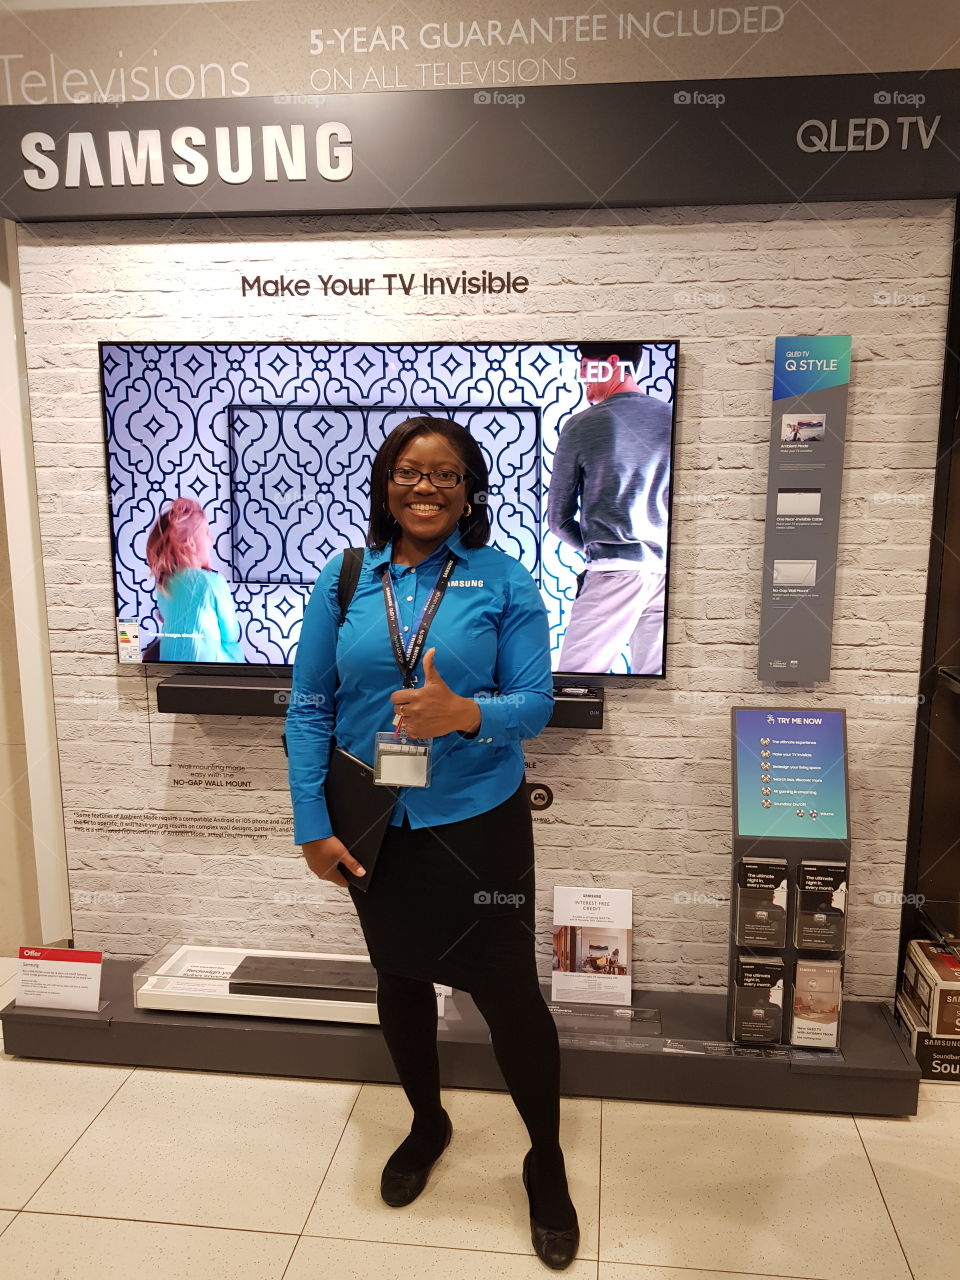 Samsung QLED television with soundbar and field force